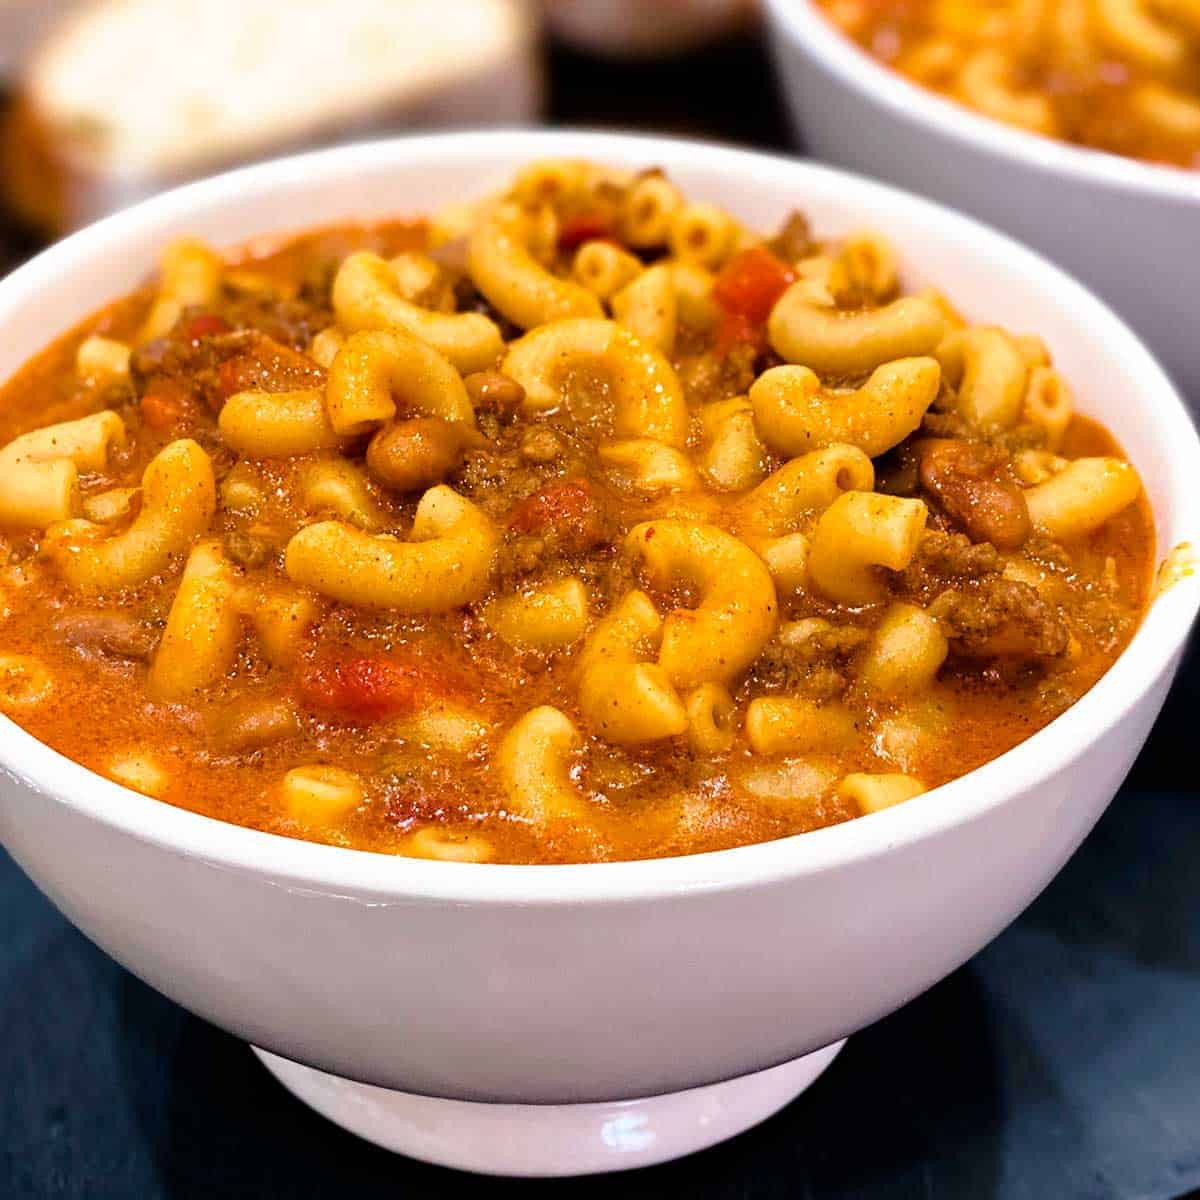 Instant pot chili mac in a white bowl